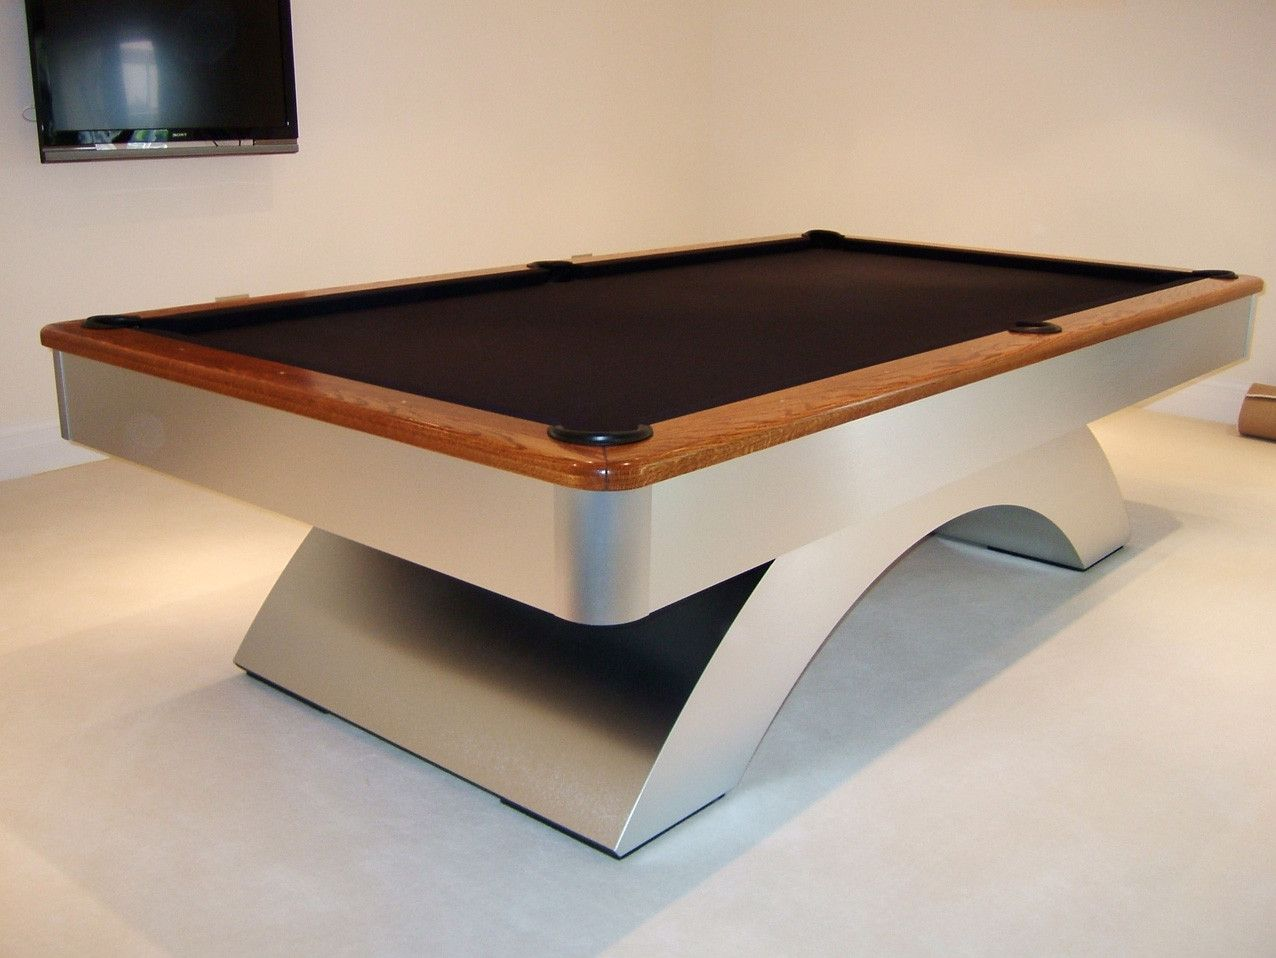 A Olhausen Waterfall Pool Table By Olhausen Billiards : Buy Online At  Robbies Billiards